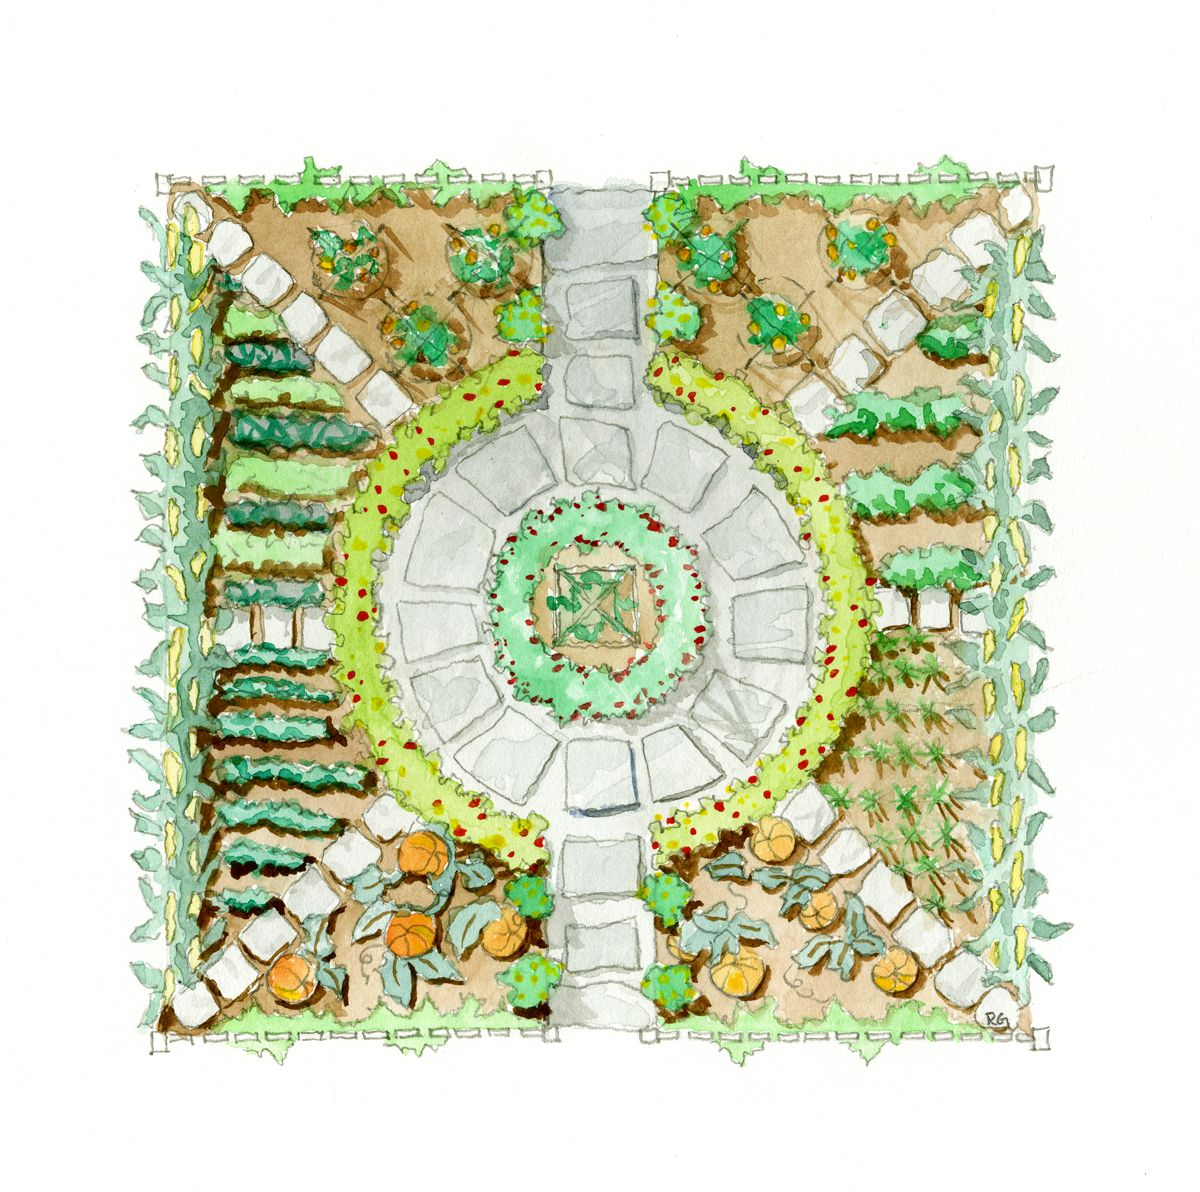 Kitchen Garden Planner: Children's Garden By Ellen Ogden In Her Book The Complete